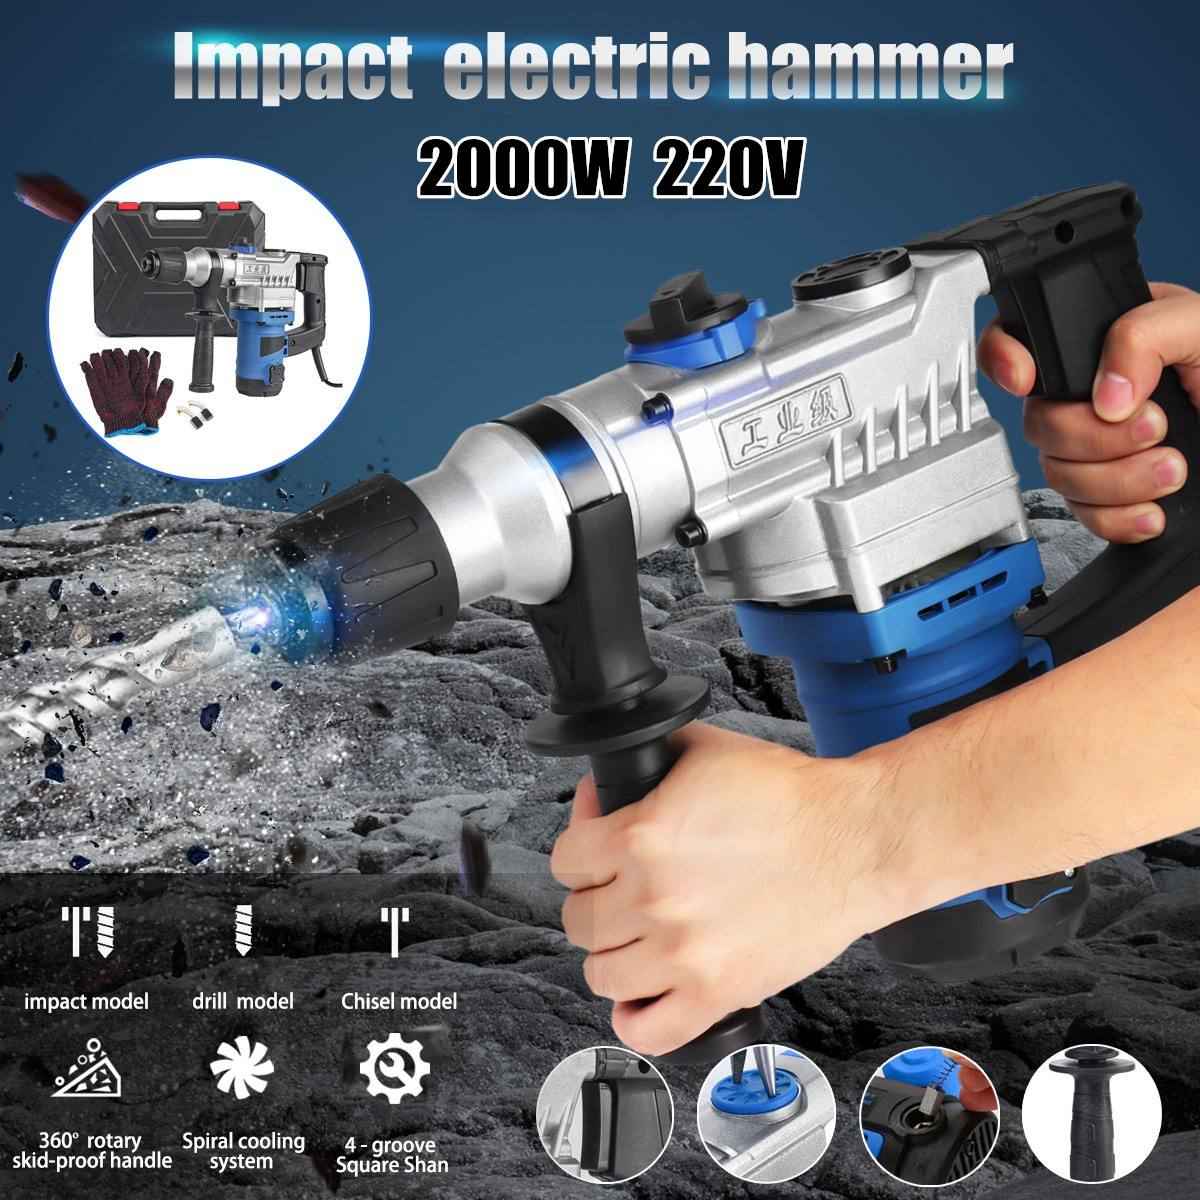 Tools : 2000W Heavy Cordless Rotary Impact Hammer Electric Hammer Drill Screwdriver Concrete Breaker 220V with Portable Tool Storage Box